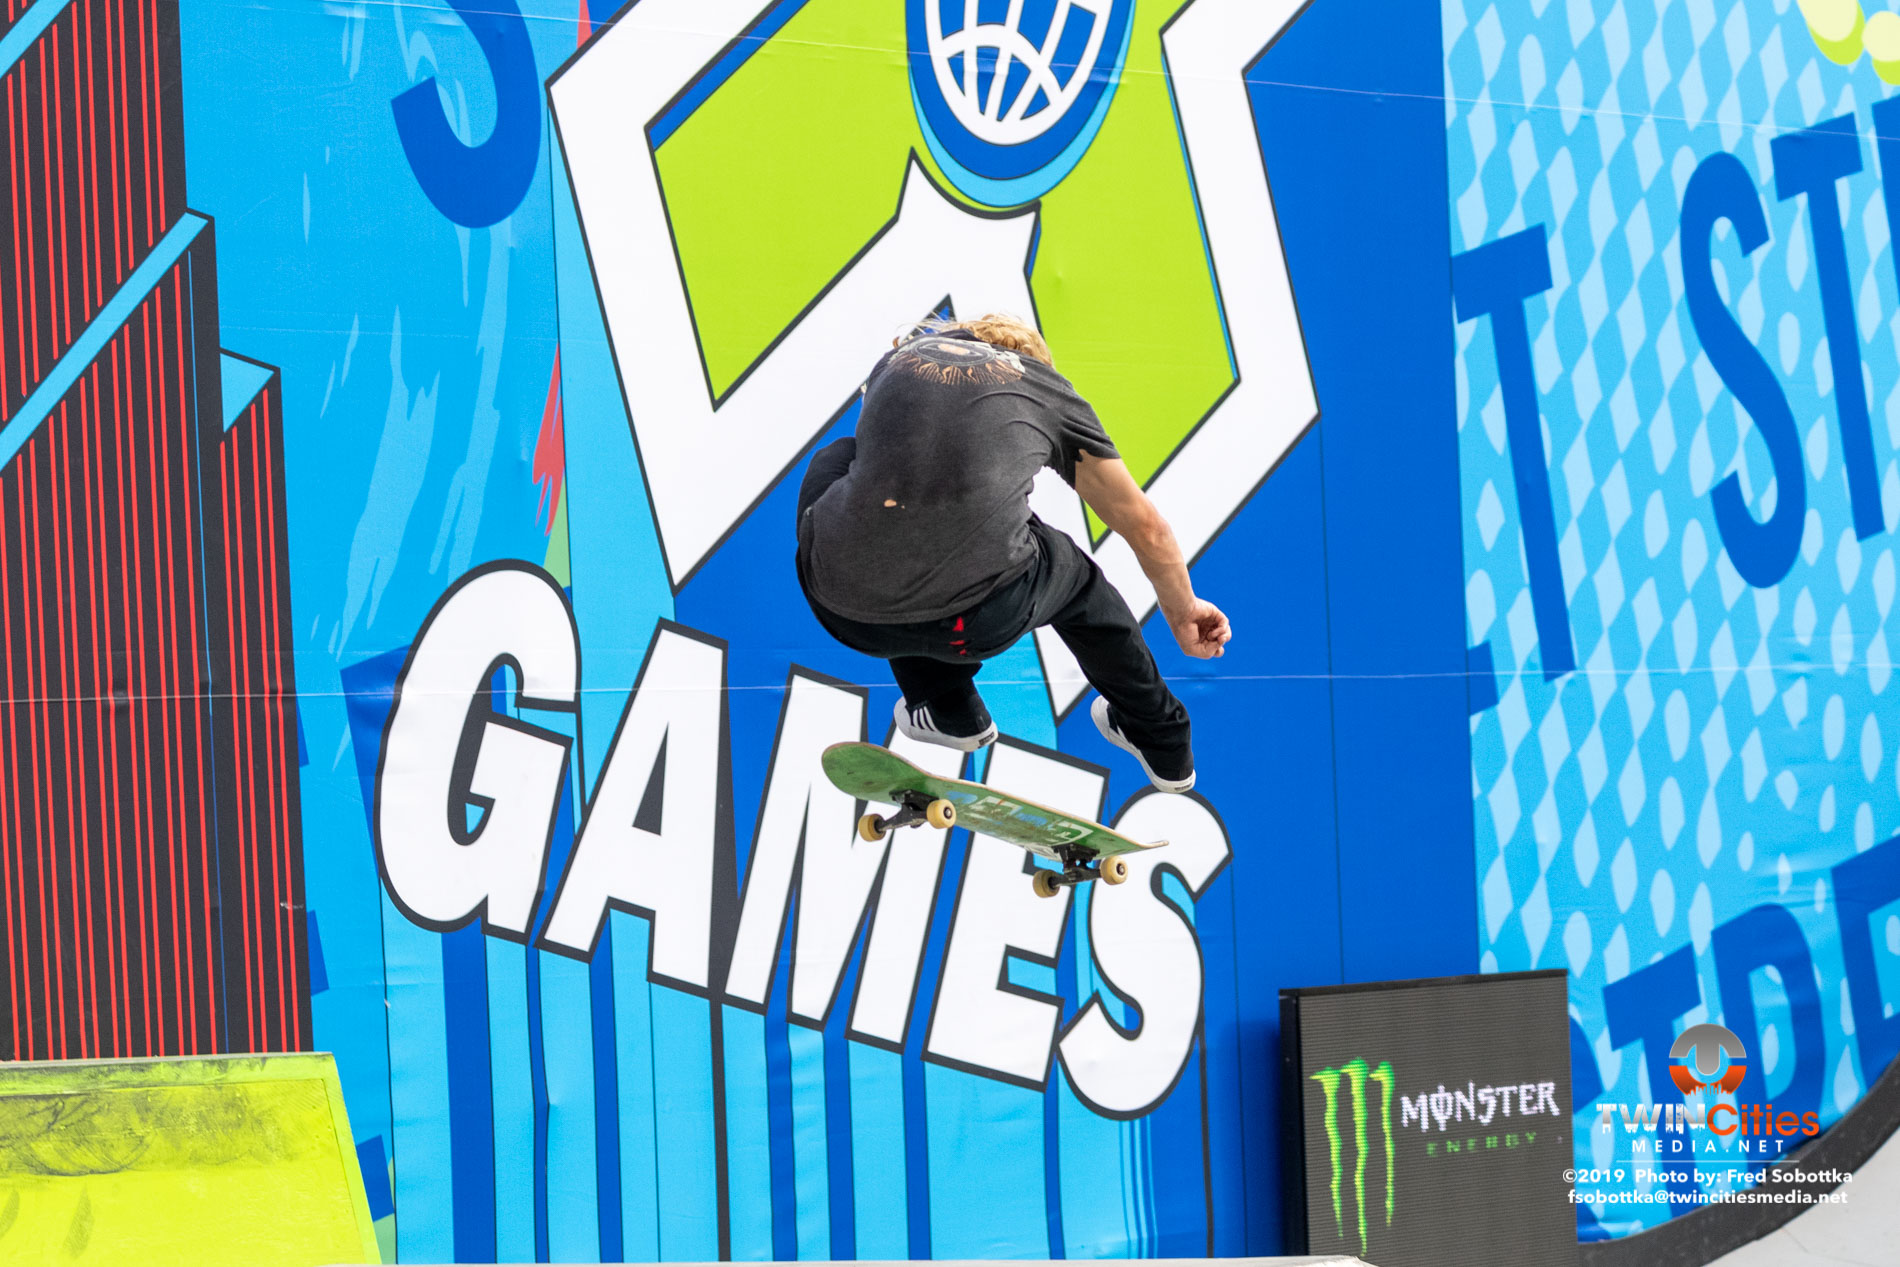 Monster-Energy-Mens-Skateboard-Street-Elimination-08